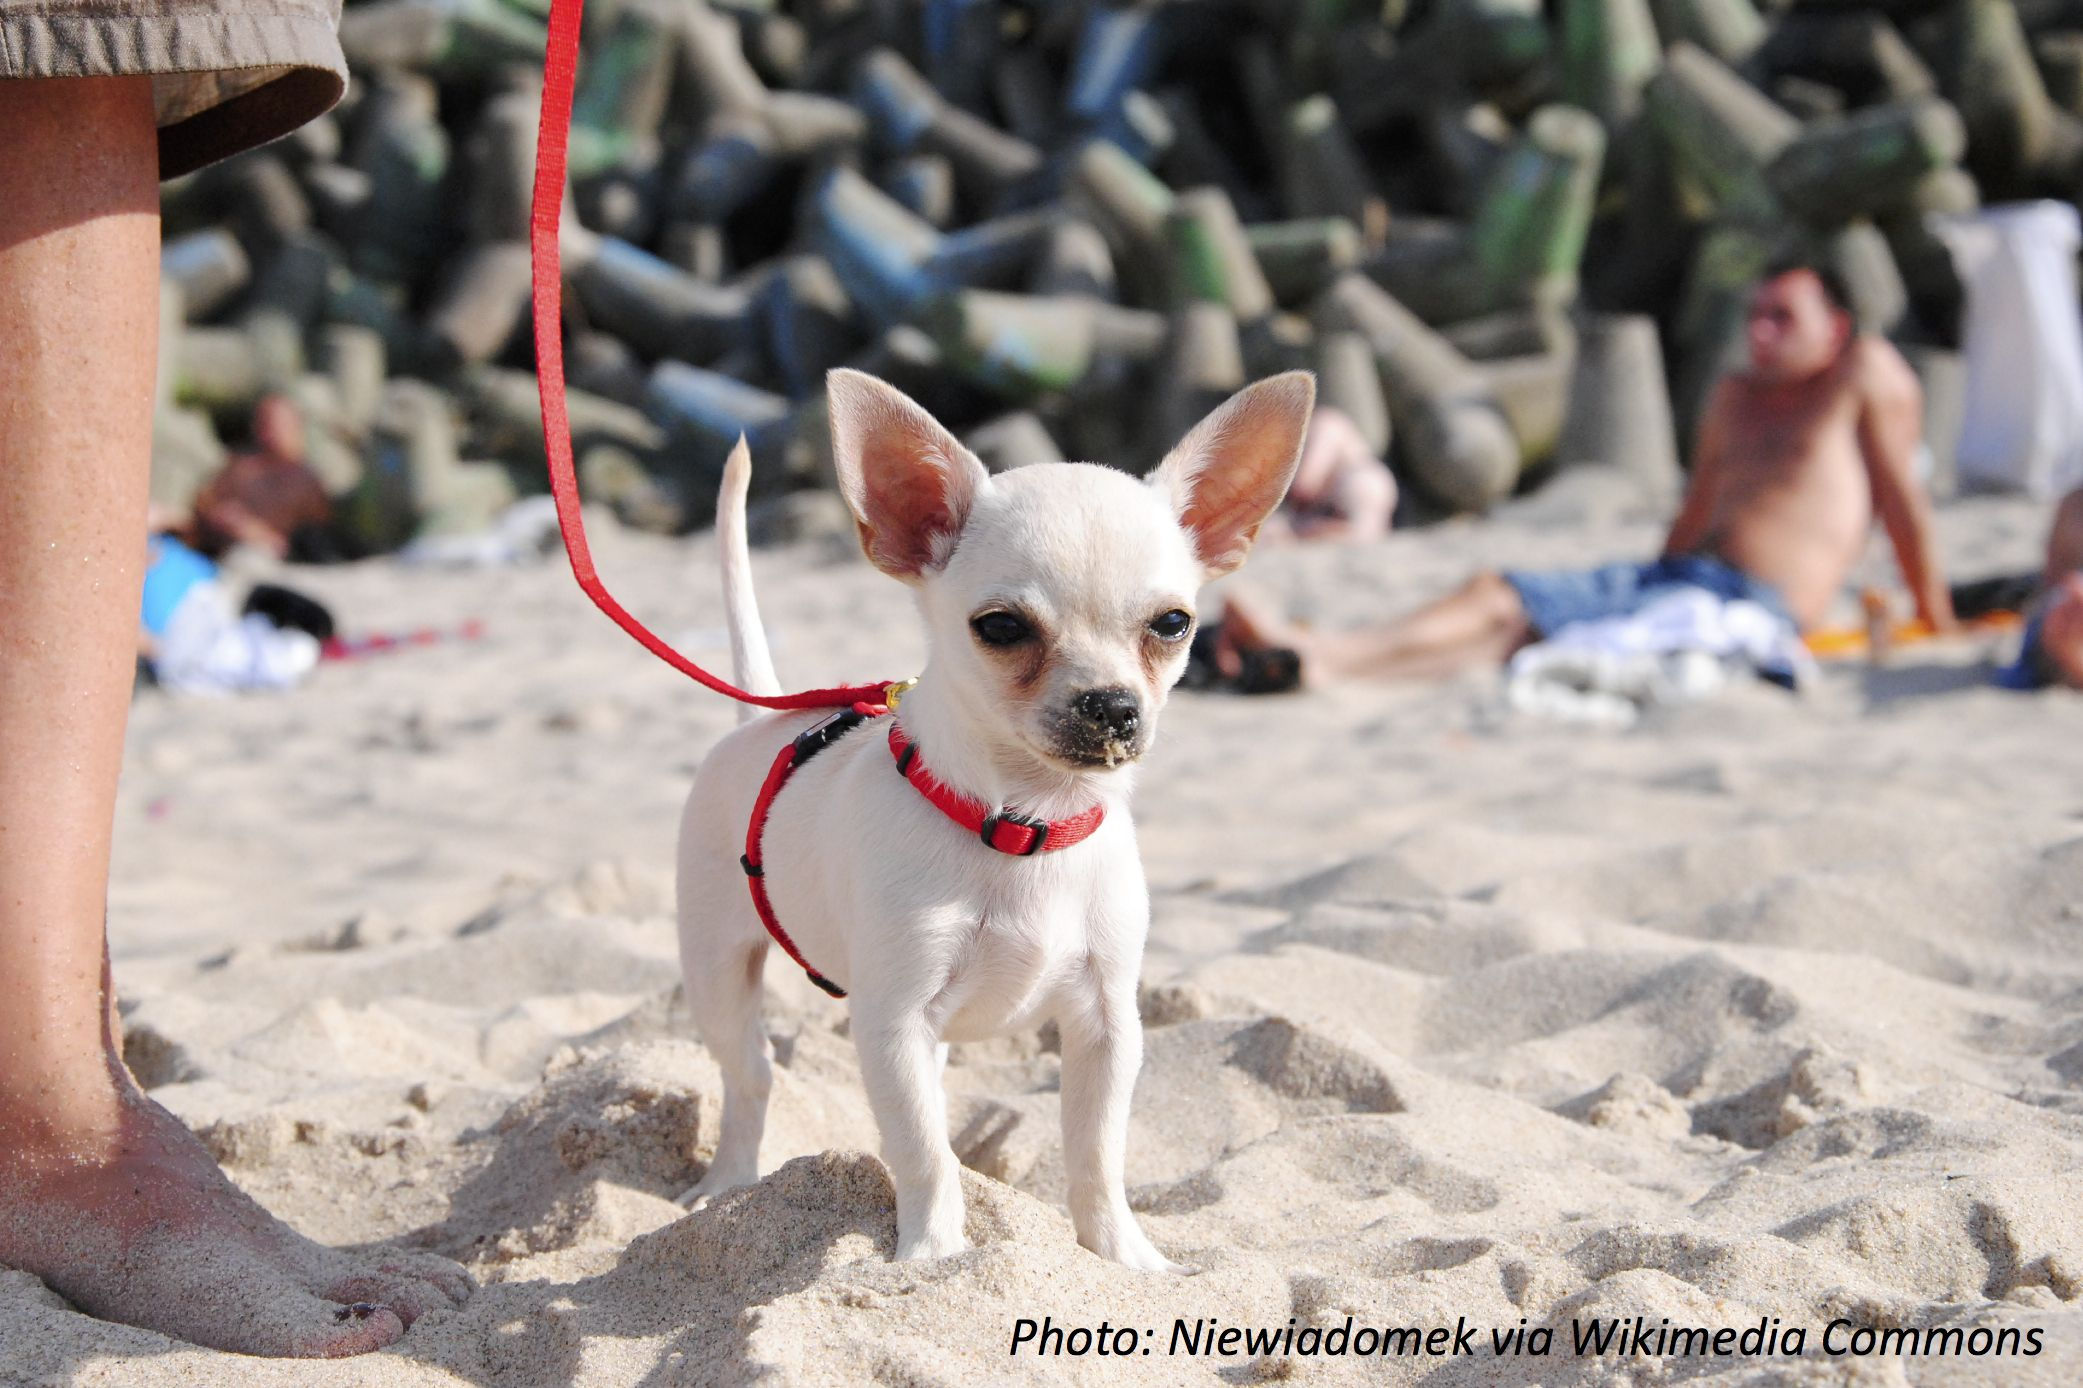 Chihuahuas Might Not Be The Biggest Dogs But They Ve Got The Biggest Hearts When It Comes To Competitions Catch Dog Friendly Beach Very Cute Dogs Dog Friends